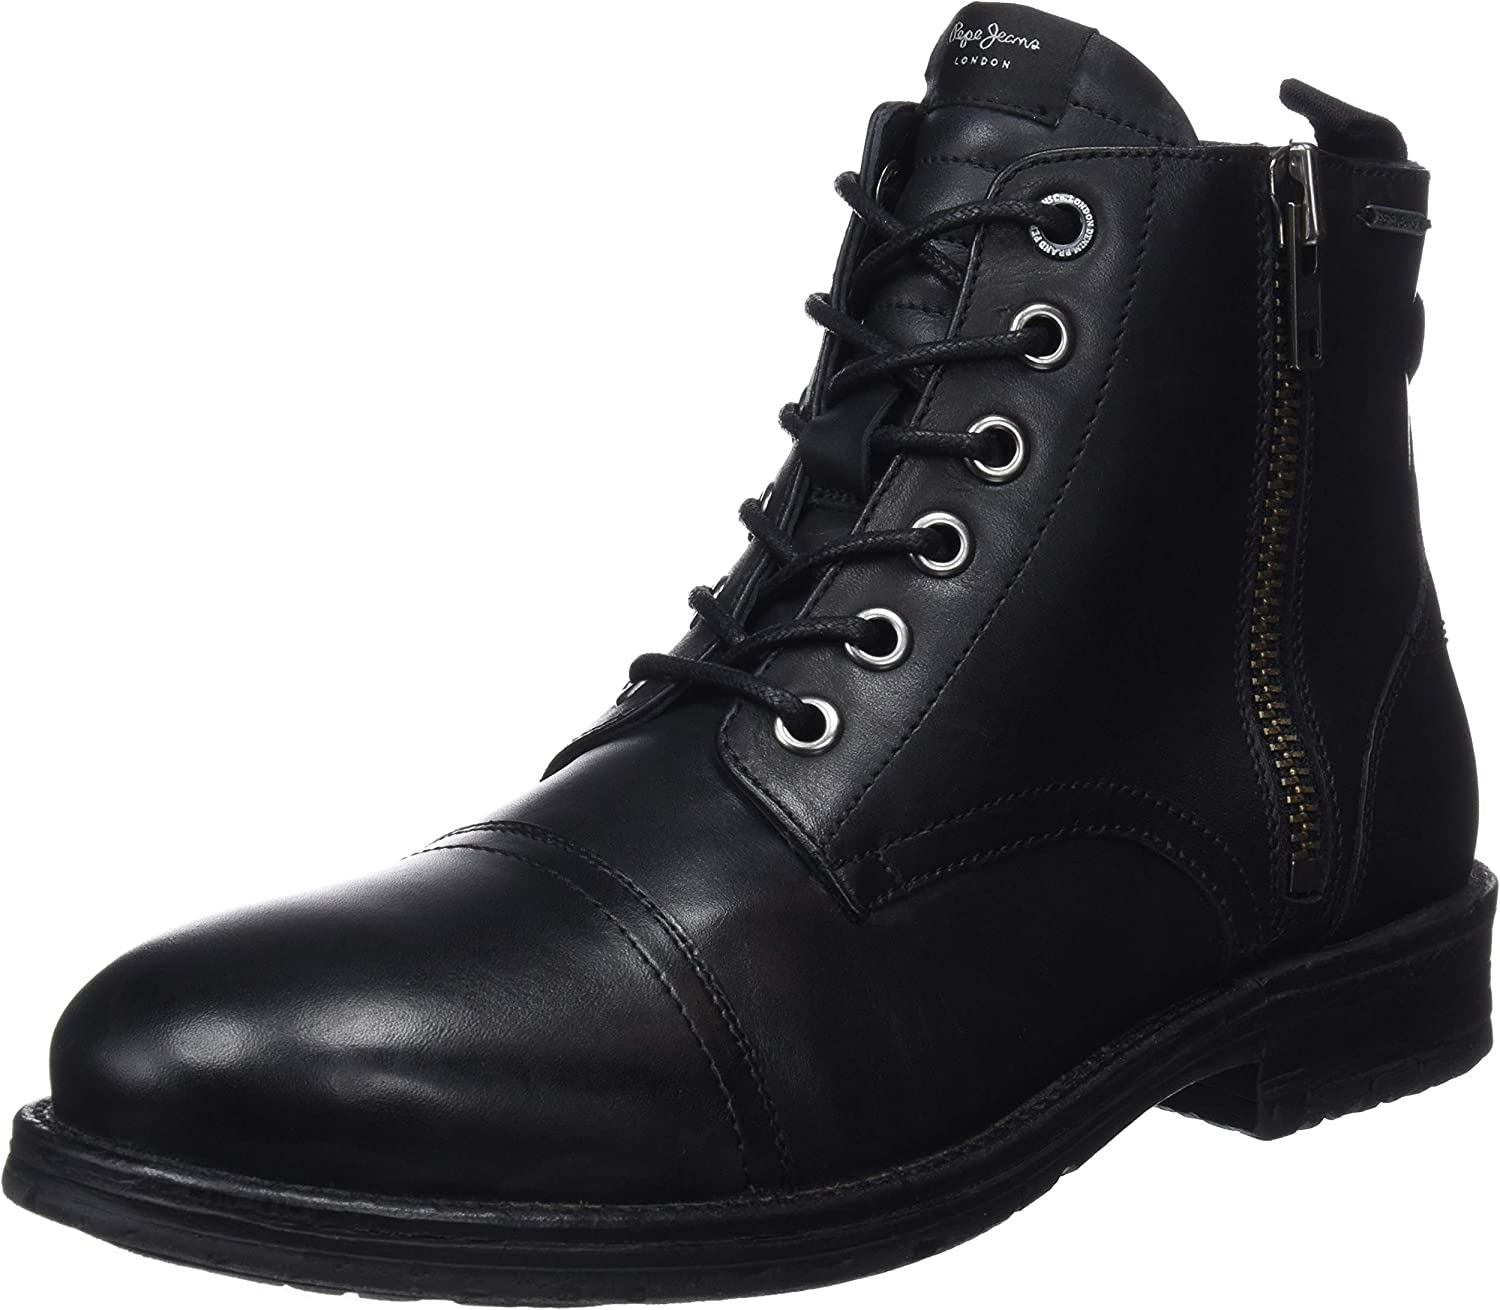 Pepe Jeans Tom-Cut Med Boot, Botas Clasicas para Hombre